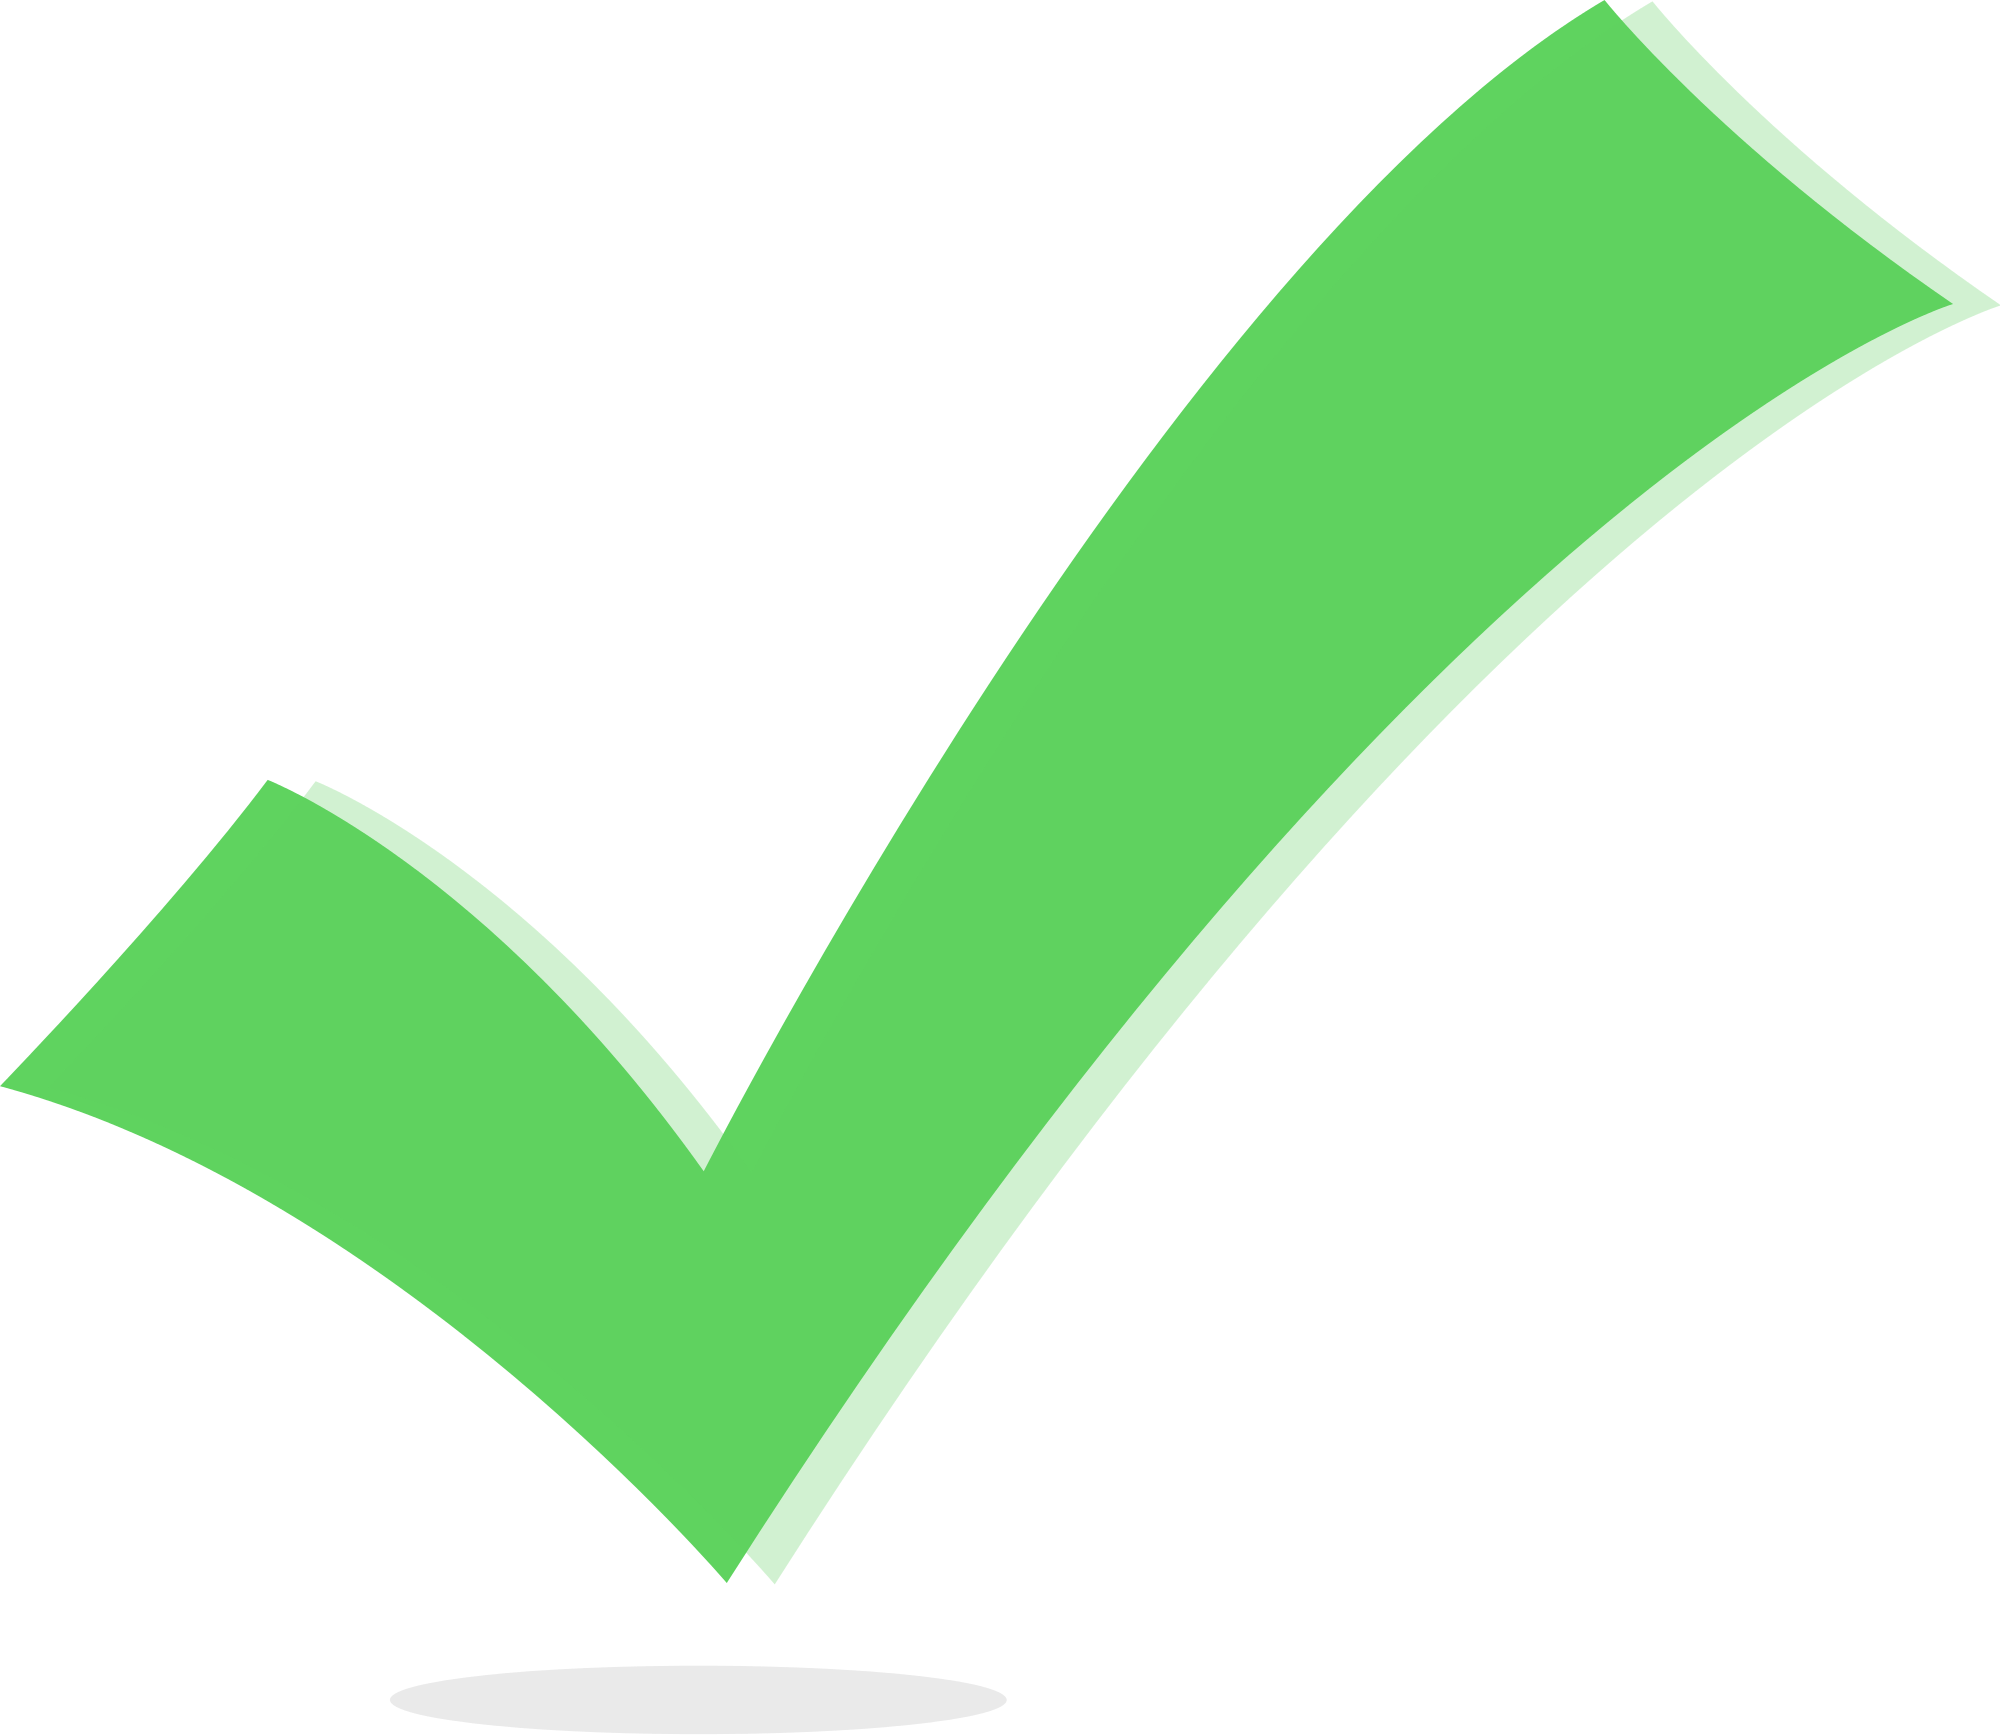 green checkmark icon png